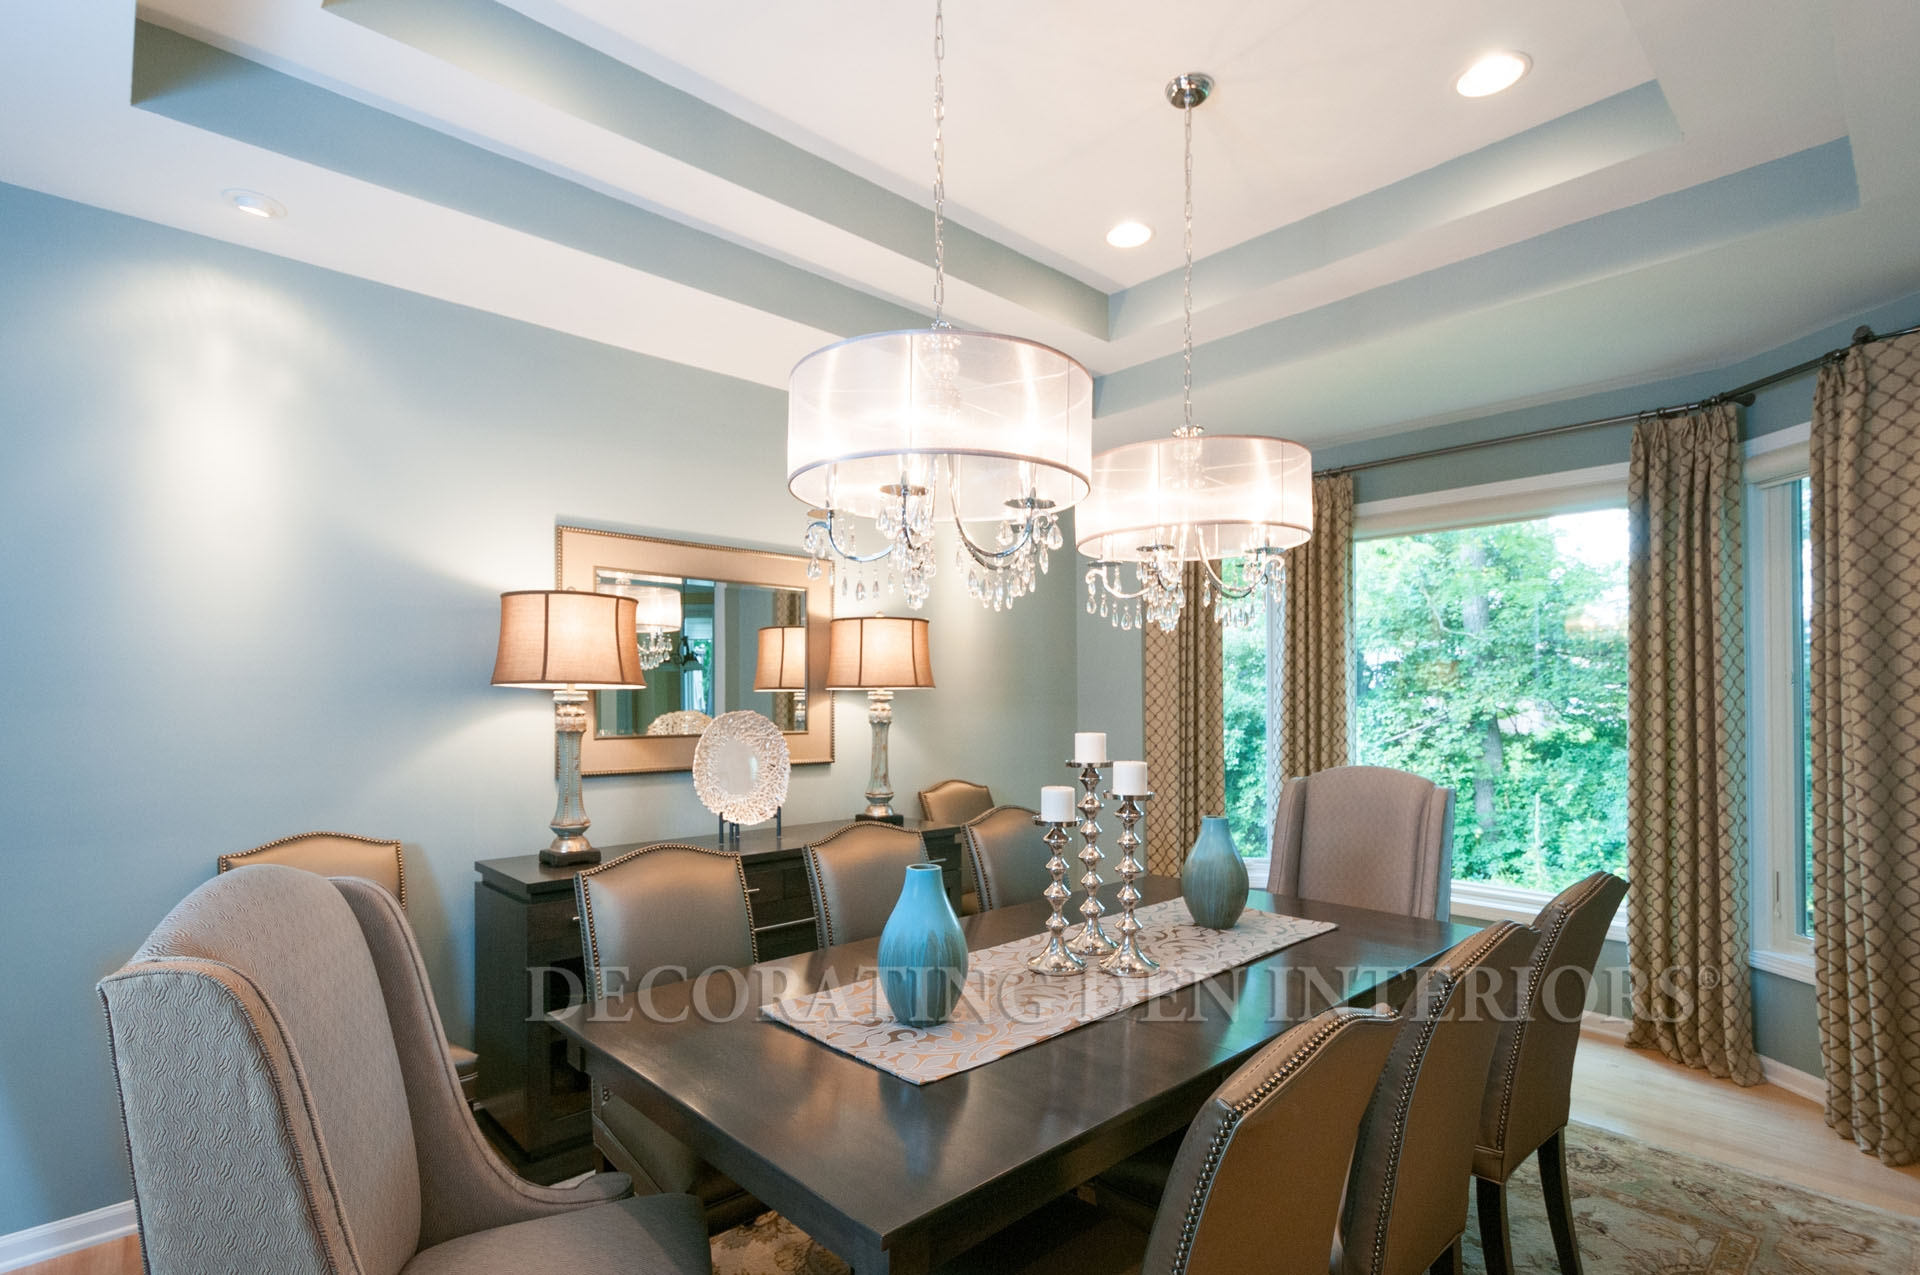 Captivating Dining Room Accent Pieces Pictures